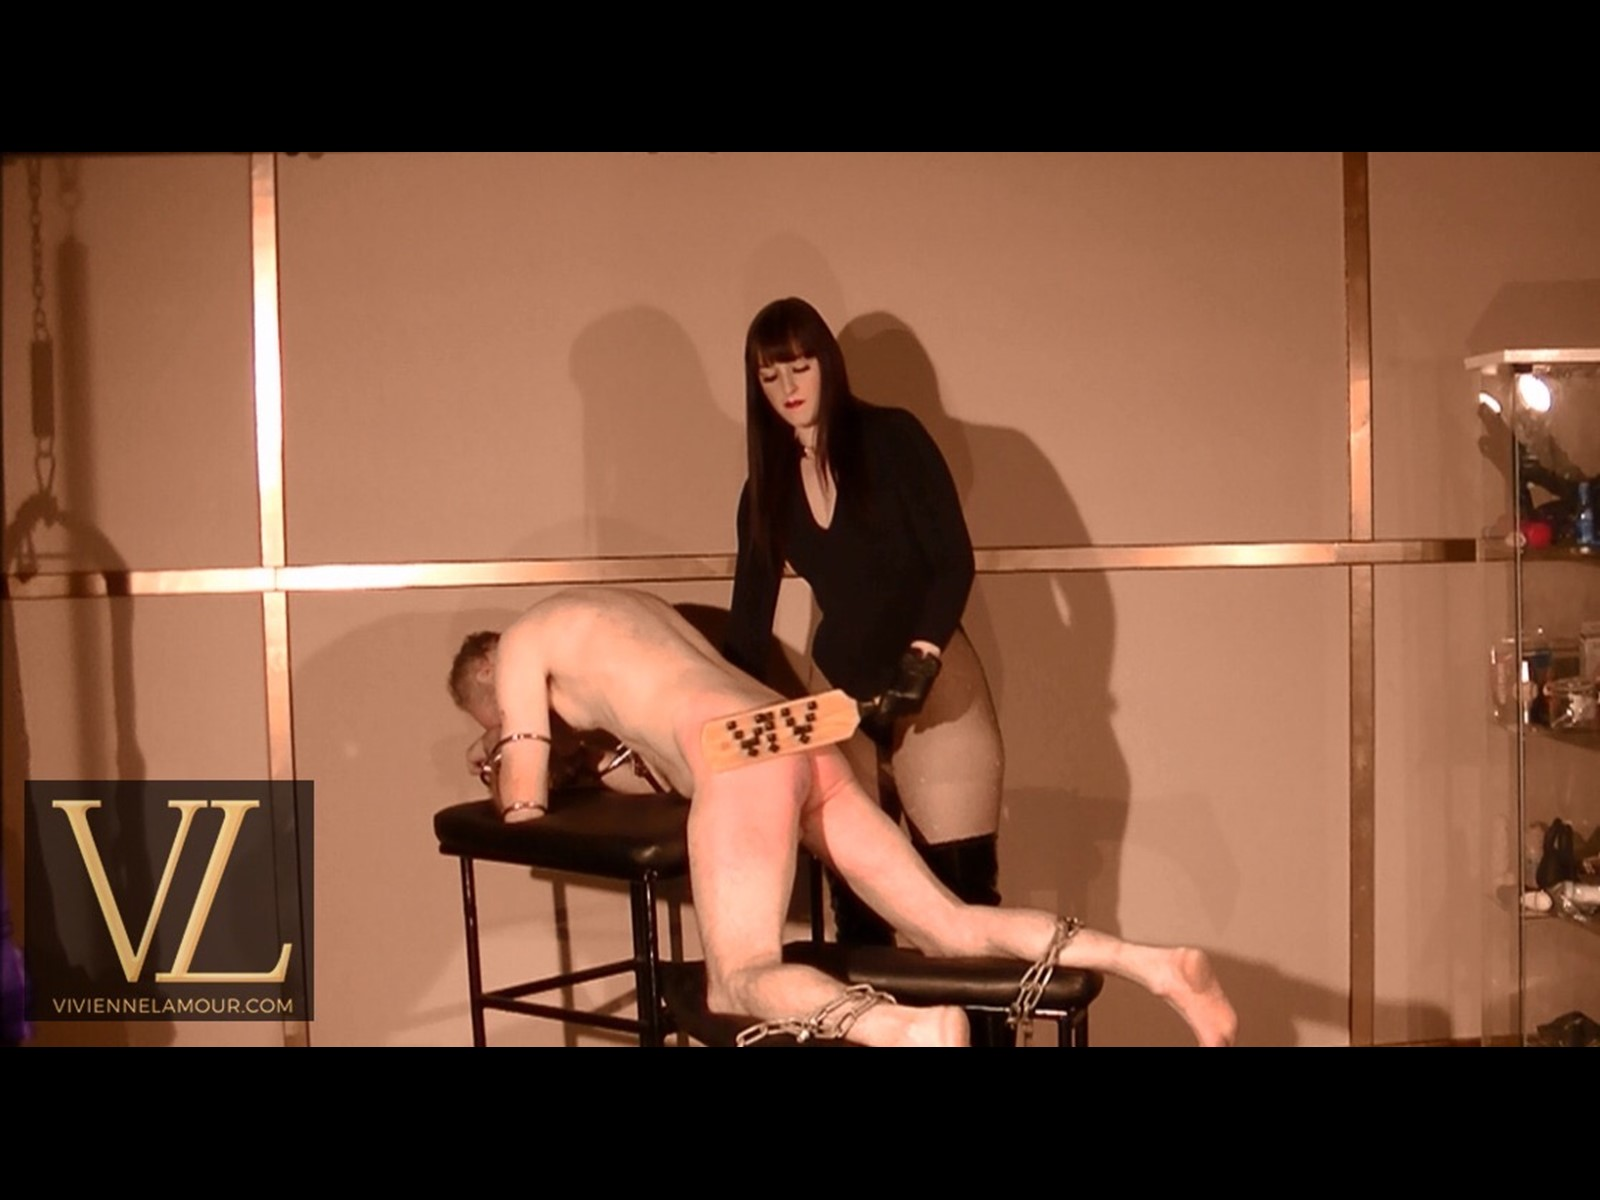 Using the Goddess Vivienne paddle with stones to make the slave on spanking bench suffer in fetish studio for hire